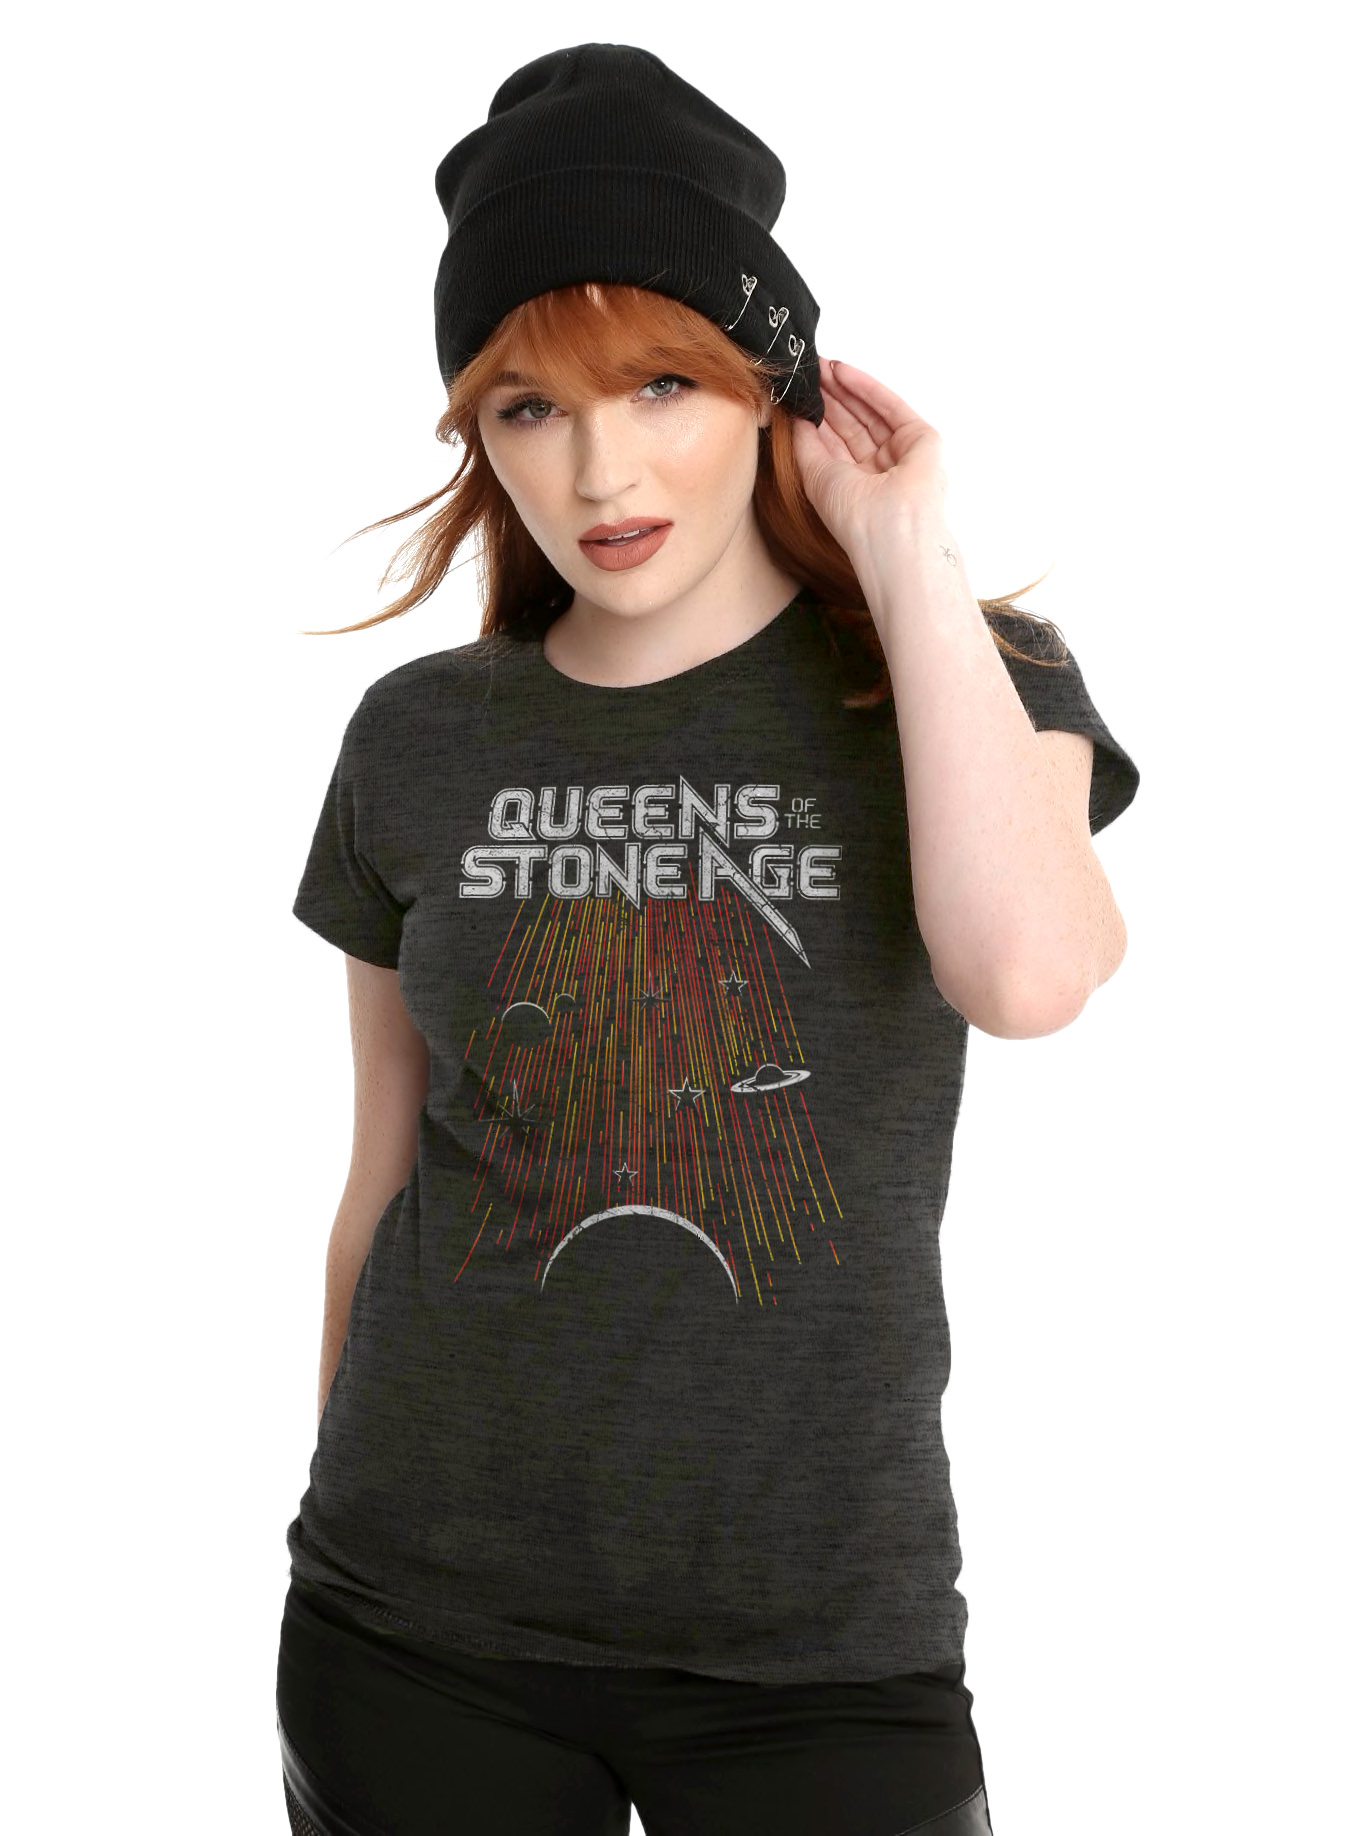 queens-of-the-stone-age-space-model.jpg